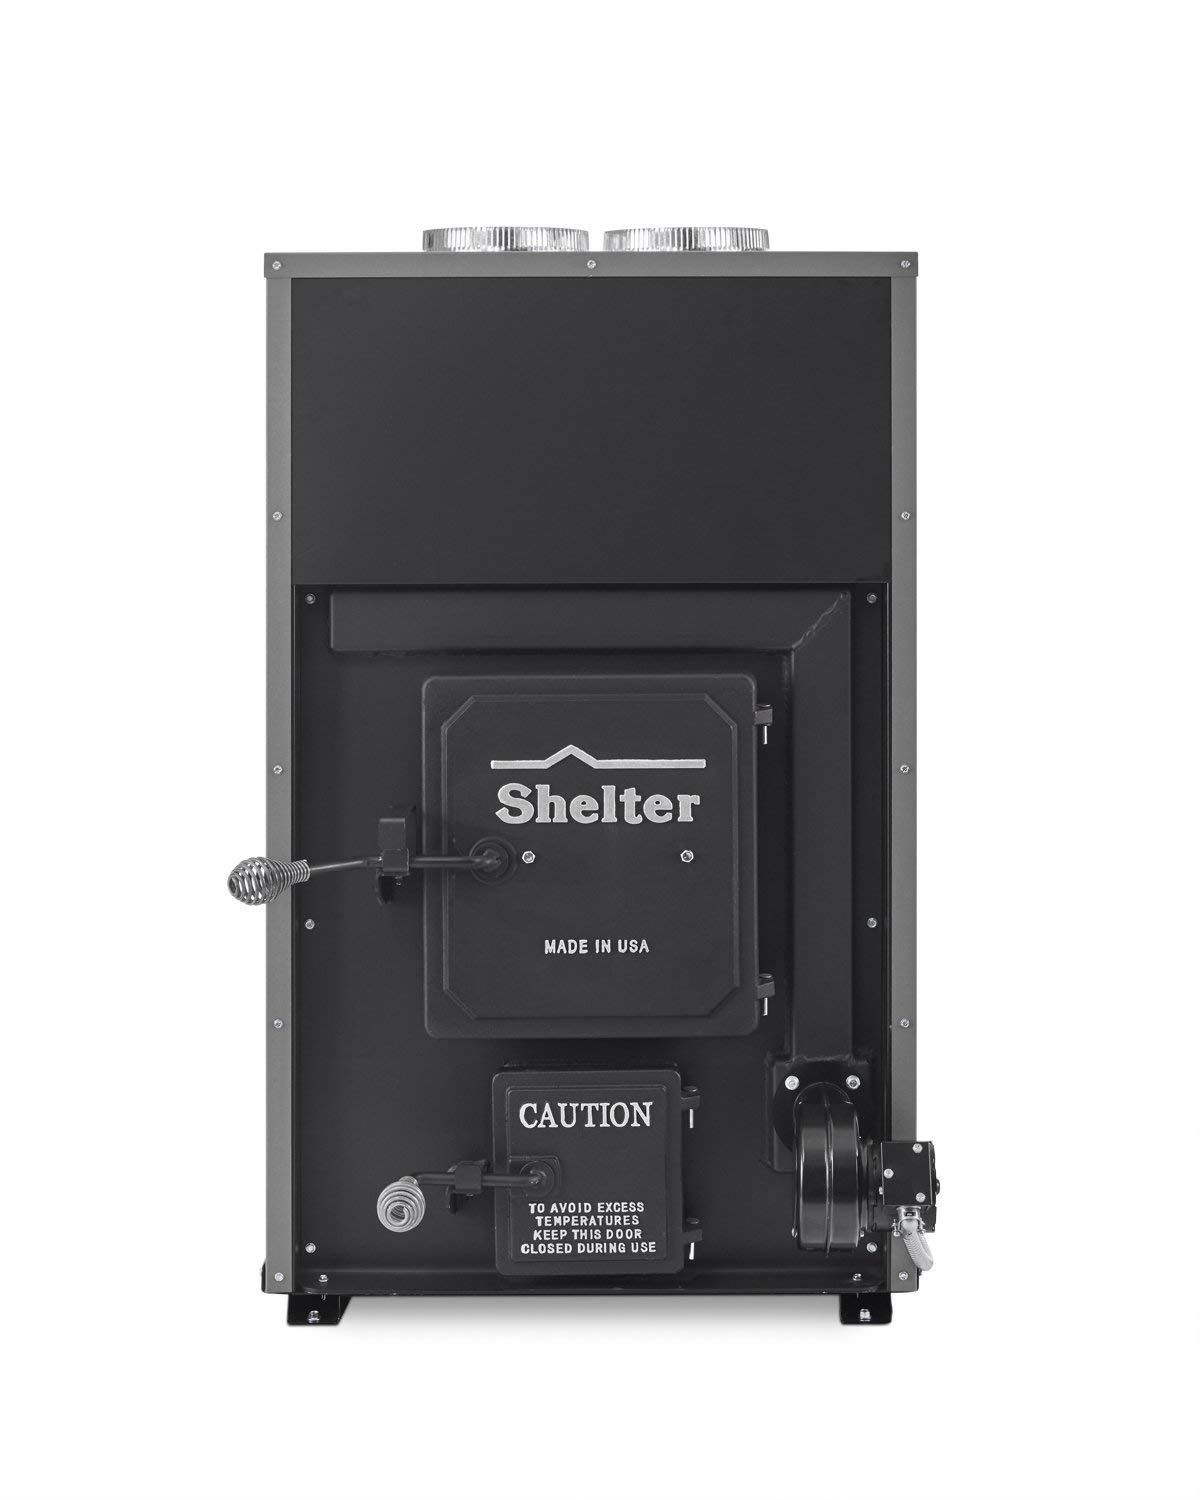 Shelter SF1000 Indoor Wood Burning Add-On Furnace (Heats up to 2,500 sq.ft.) - wood furnaces